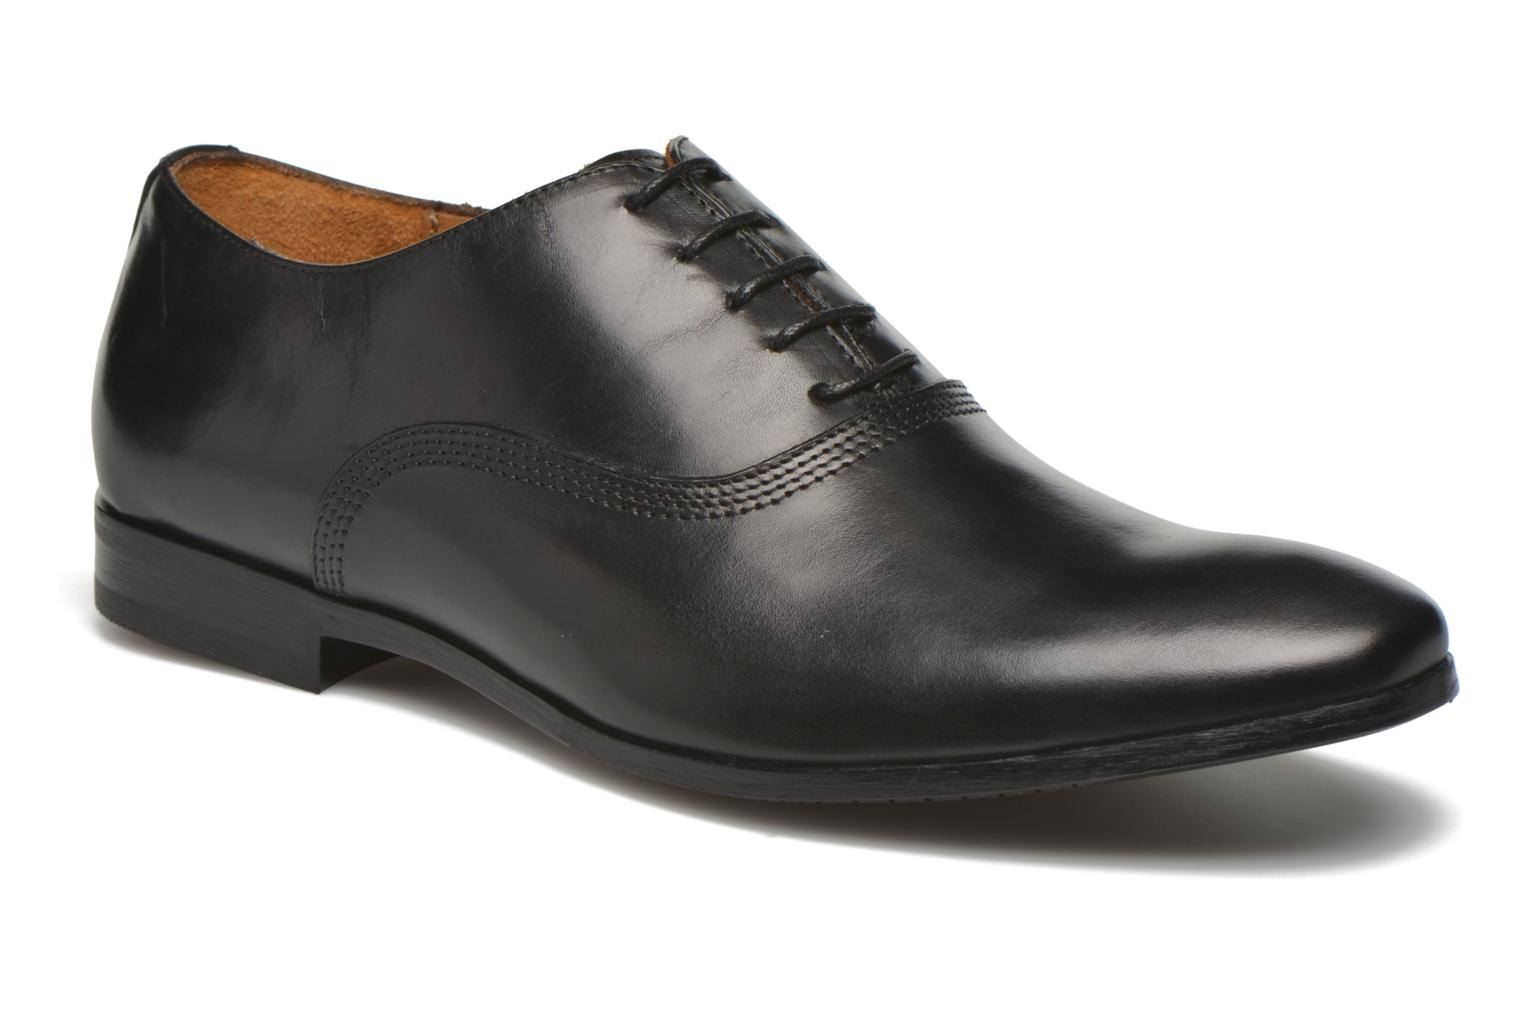 Marques Chaussure homme Marvin&Co homme Newry river bruciato